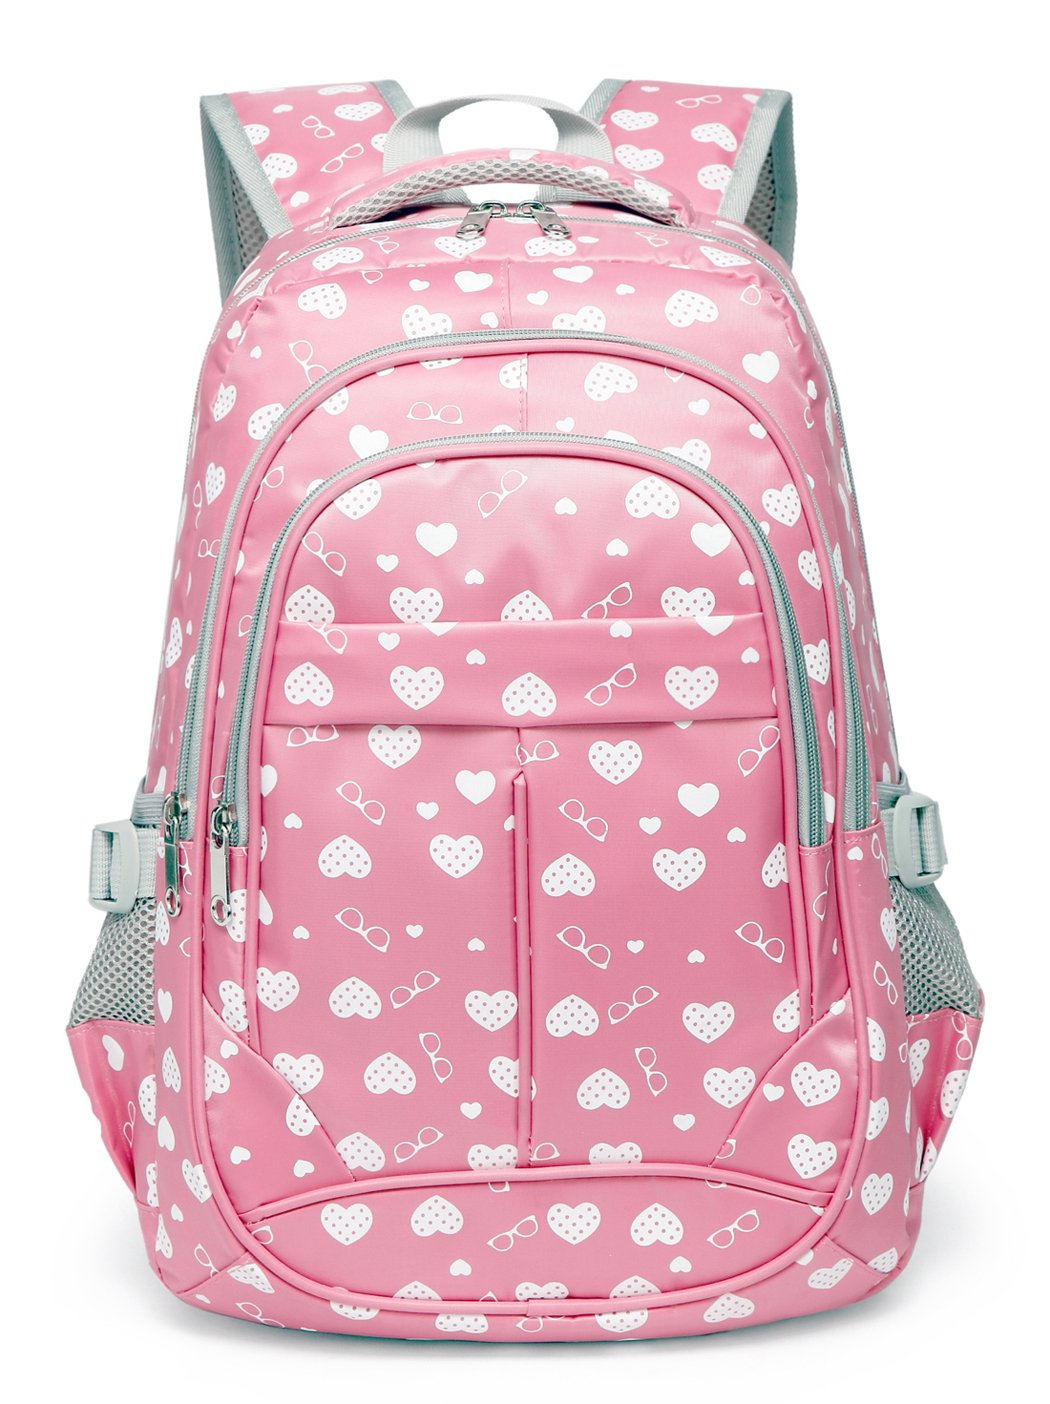 Sweetheart School Backpacks for Girls Children Kids Bookbags (Pink)